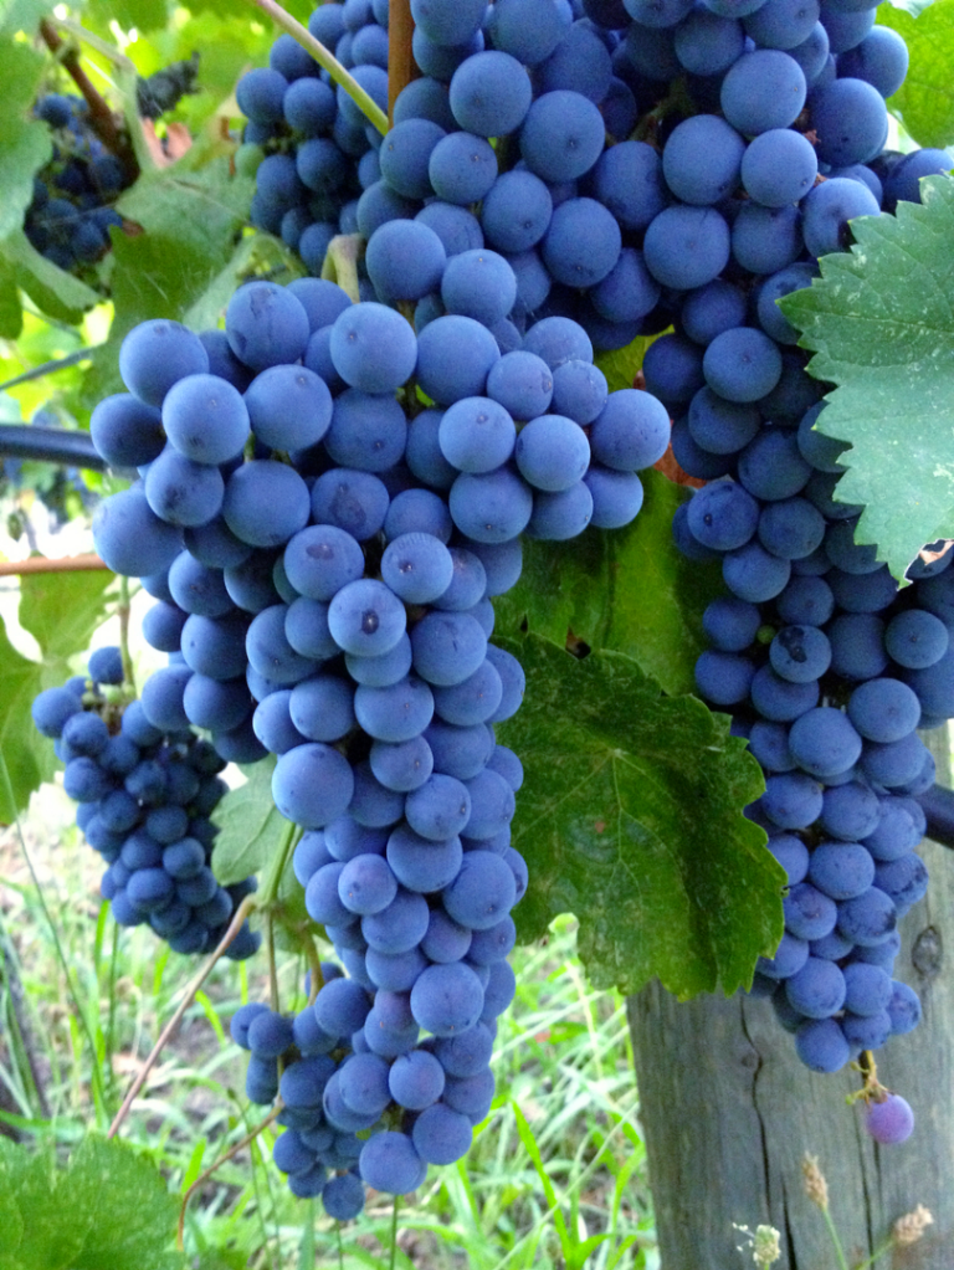 Cluster of ripe wine grapes